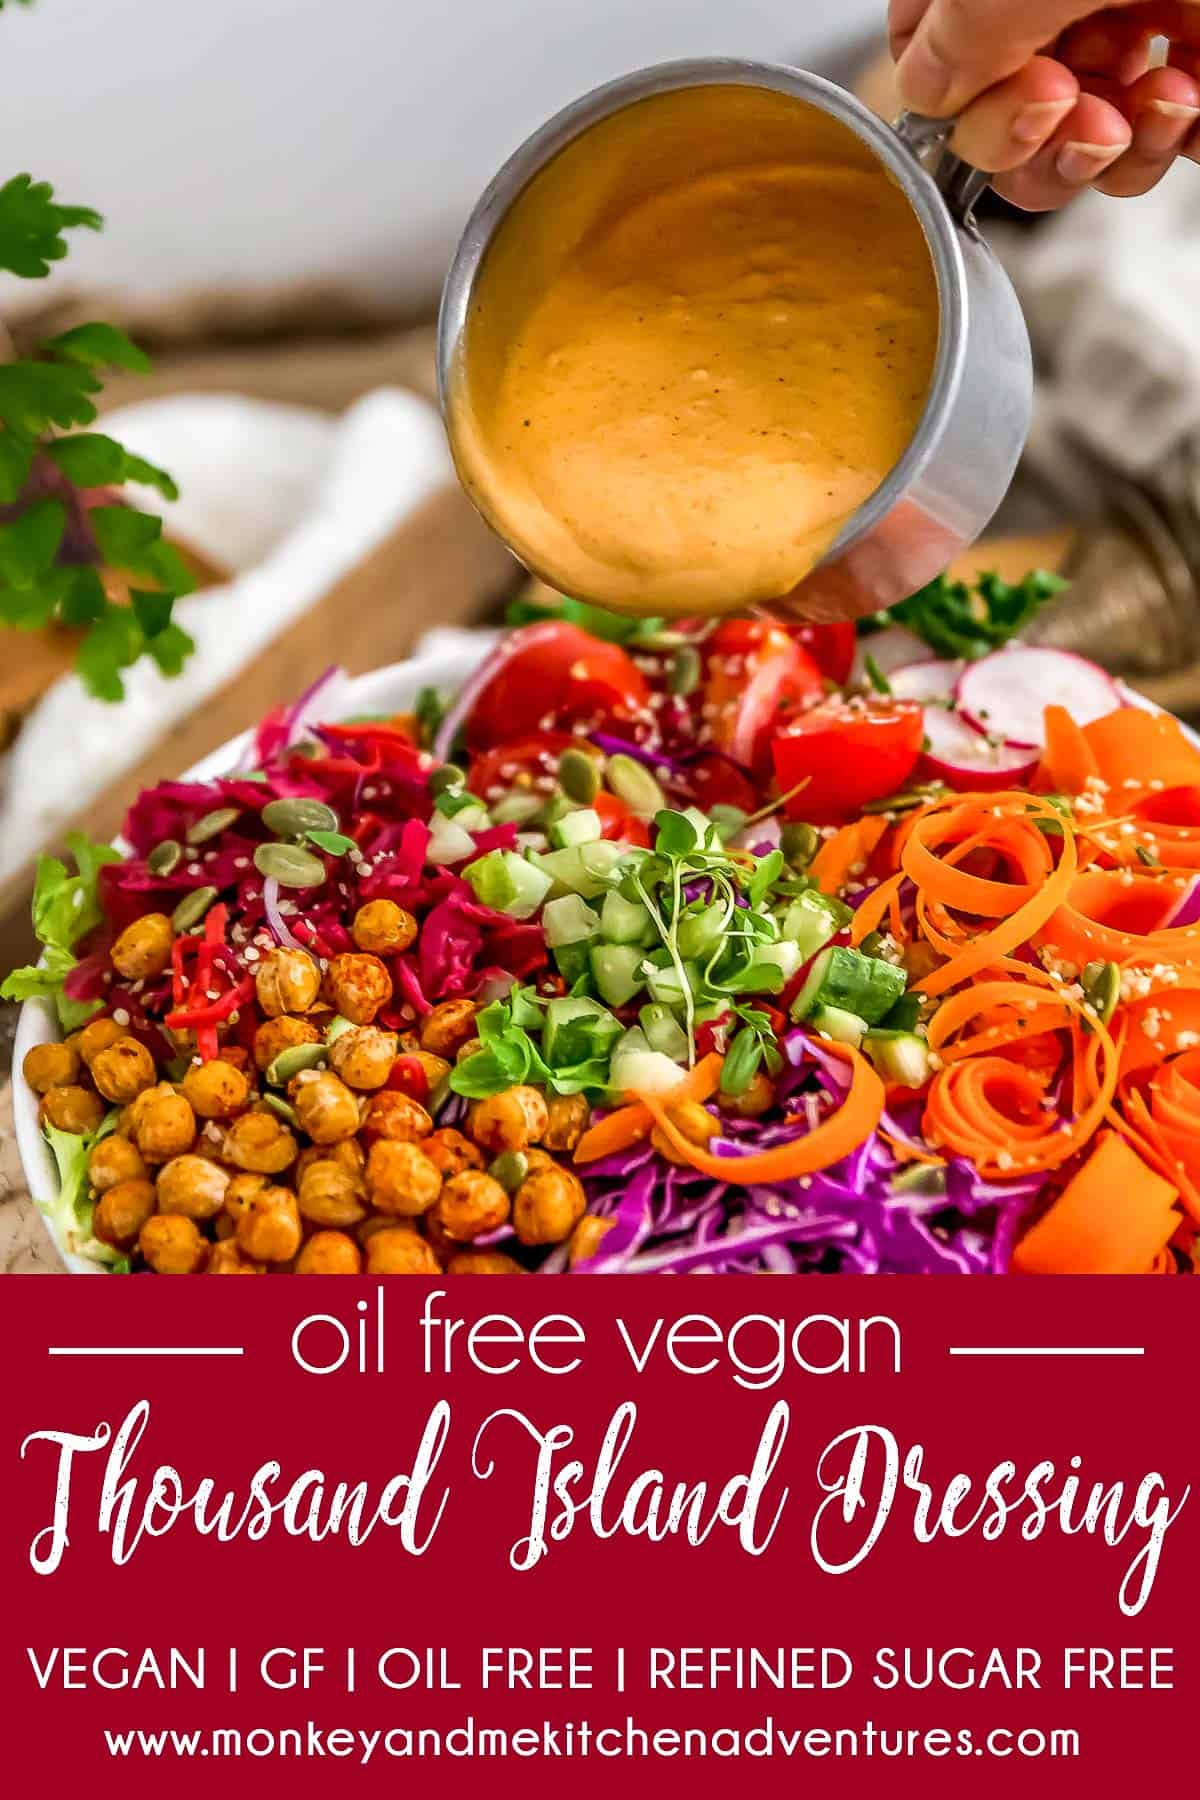 Oil Free Vegan Thousand Island Dressing with text description